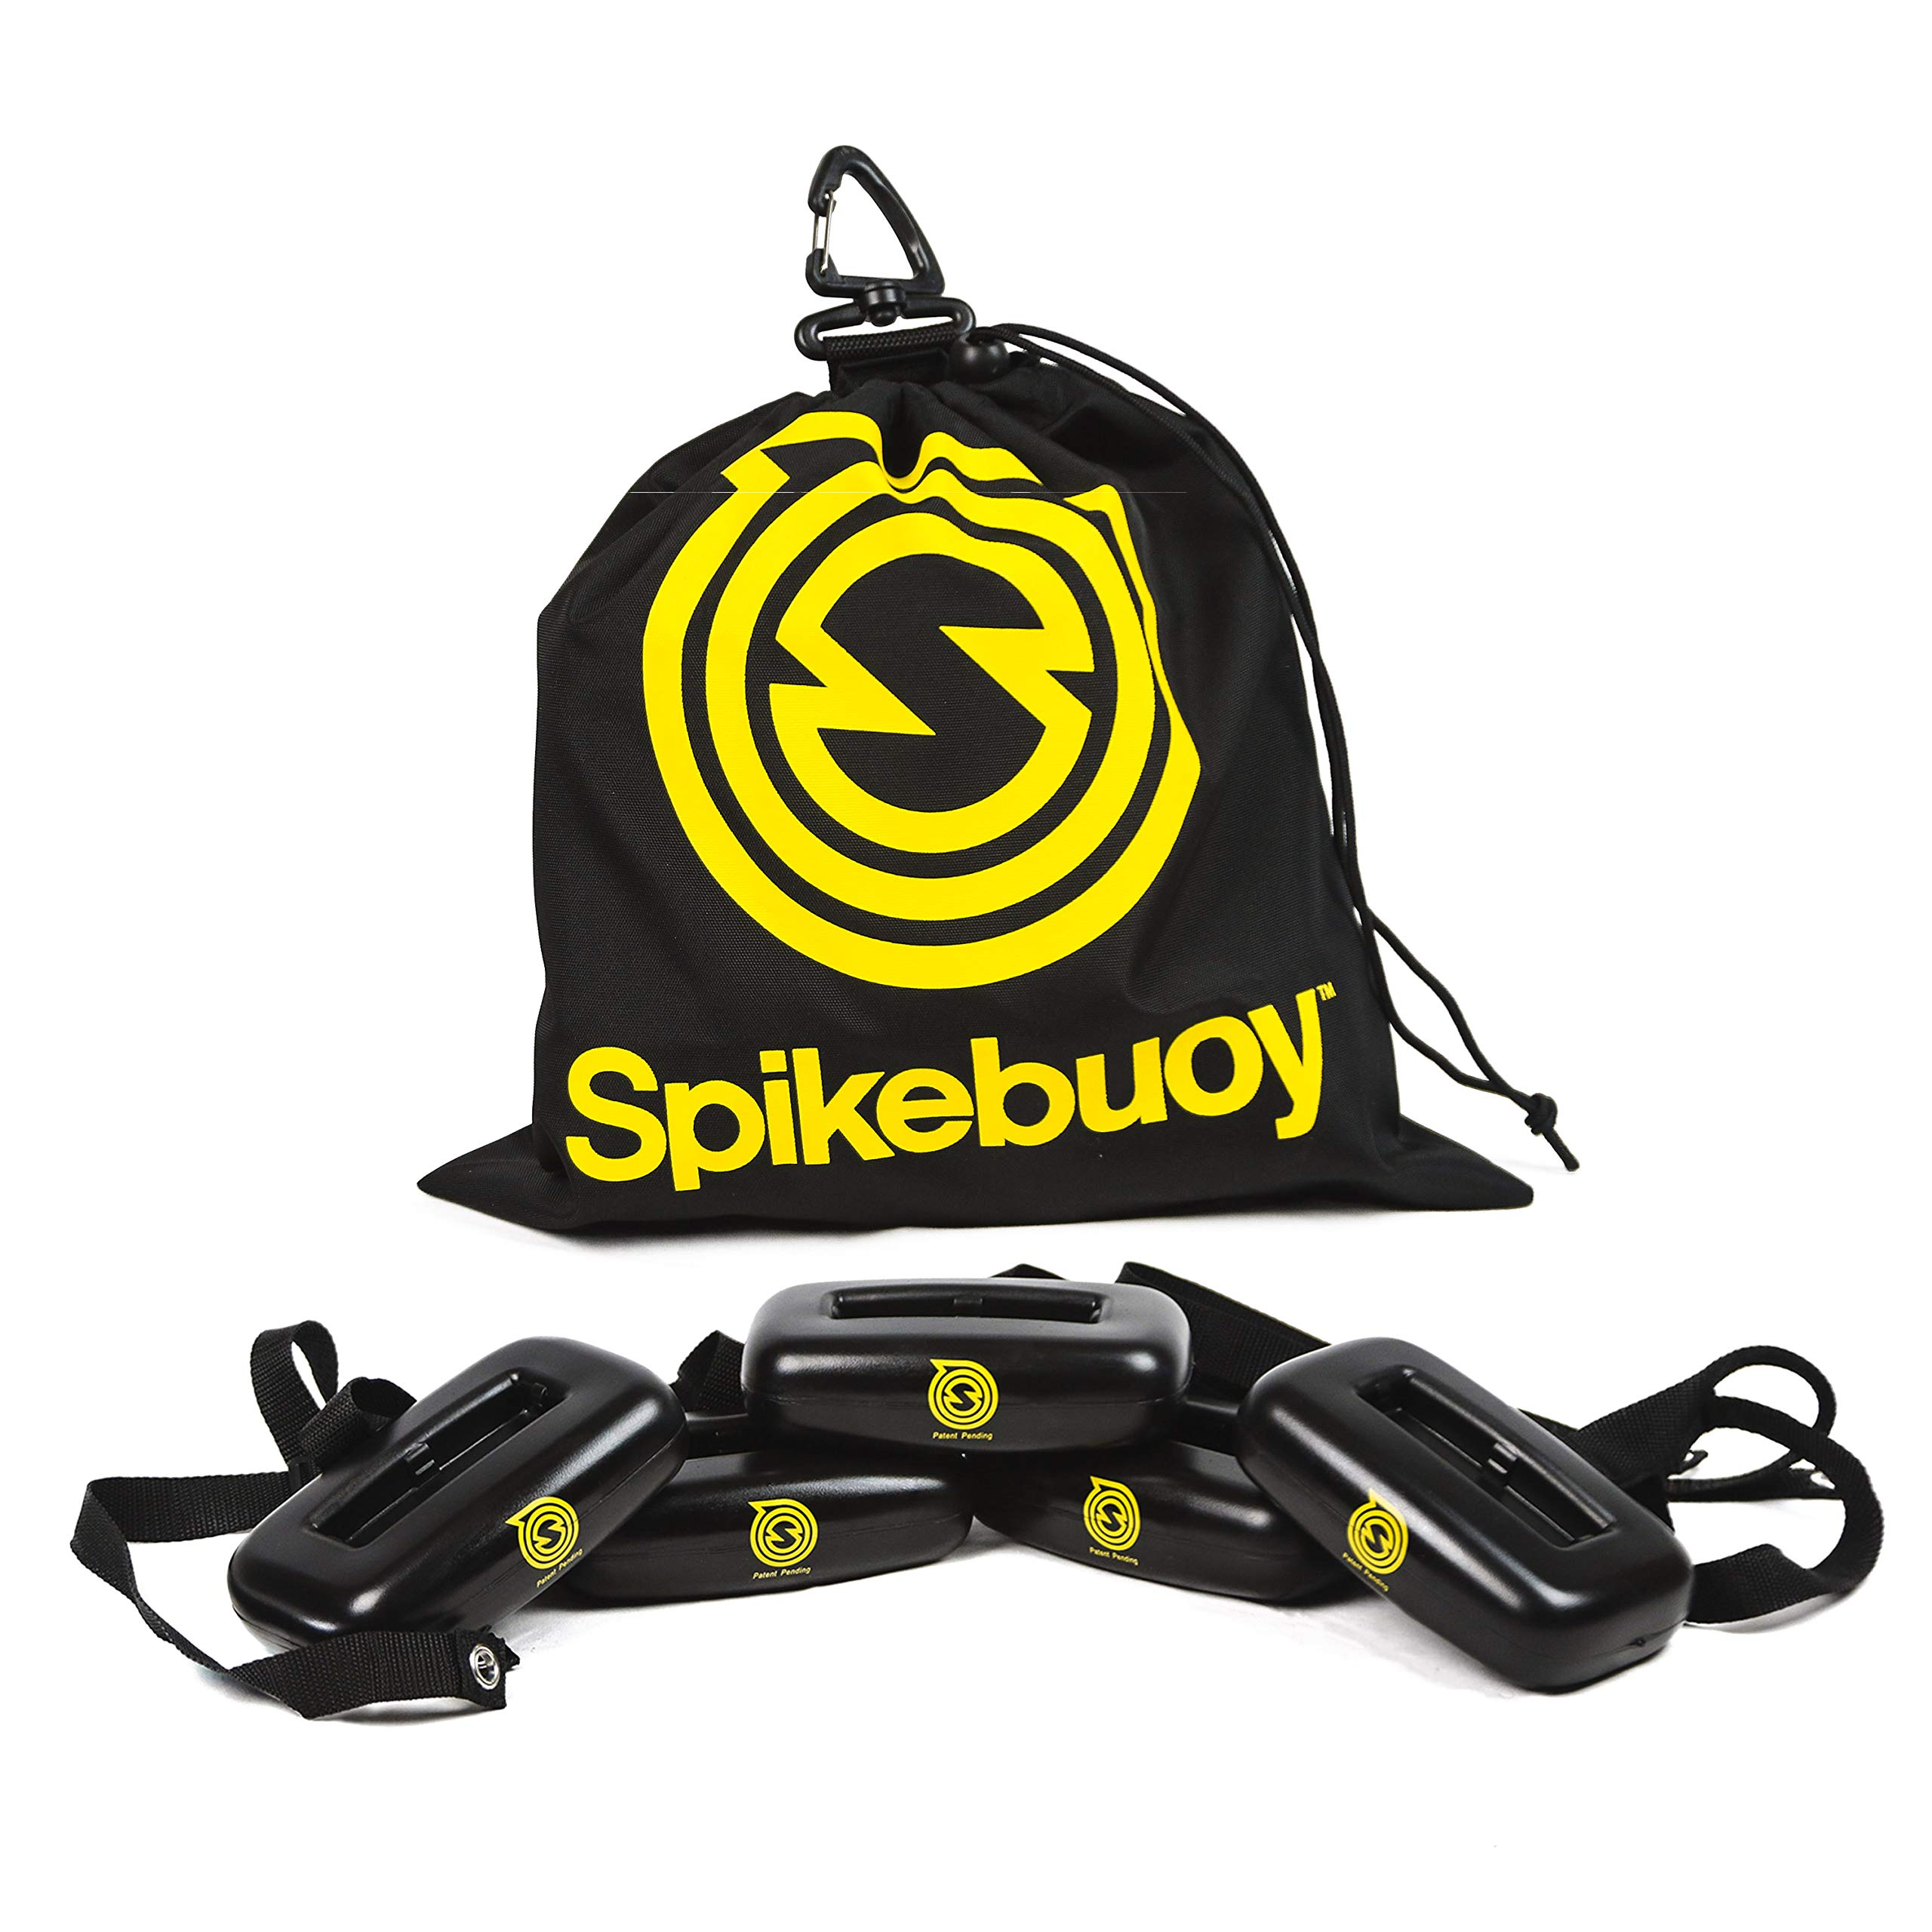 Spikebuoy - Spikeball on Water - Play in The Pool or at The Beach - Use with Standard and Pro Sets - Includes Leg Floats and Anchor Bag